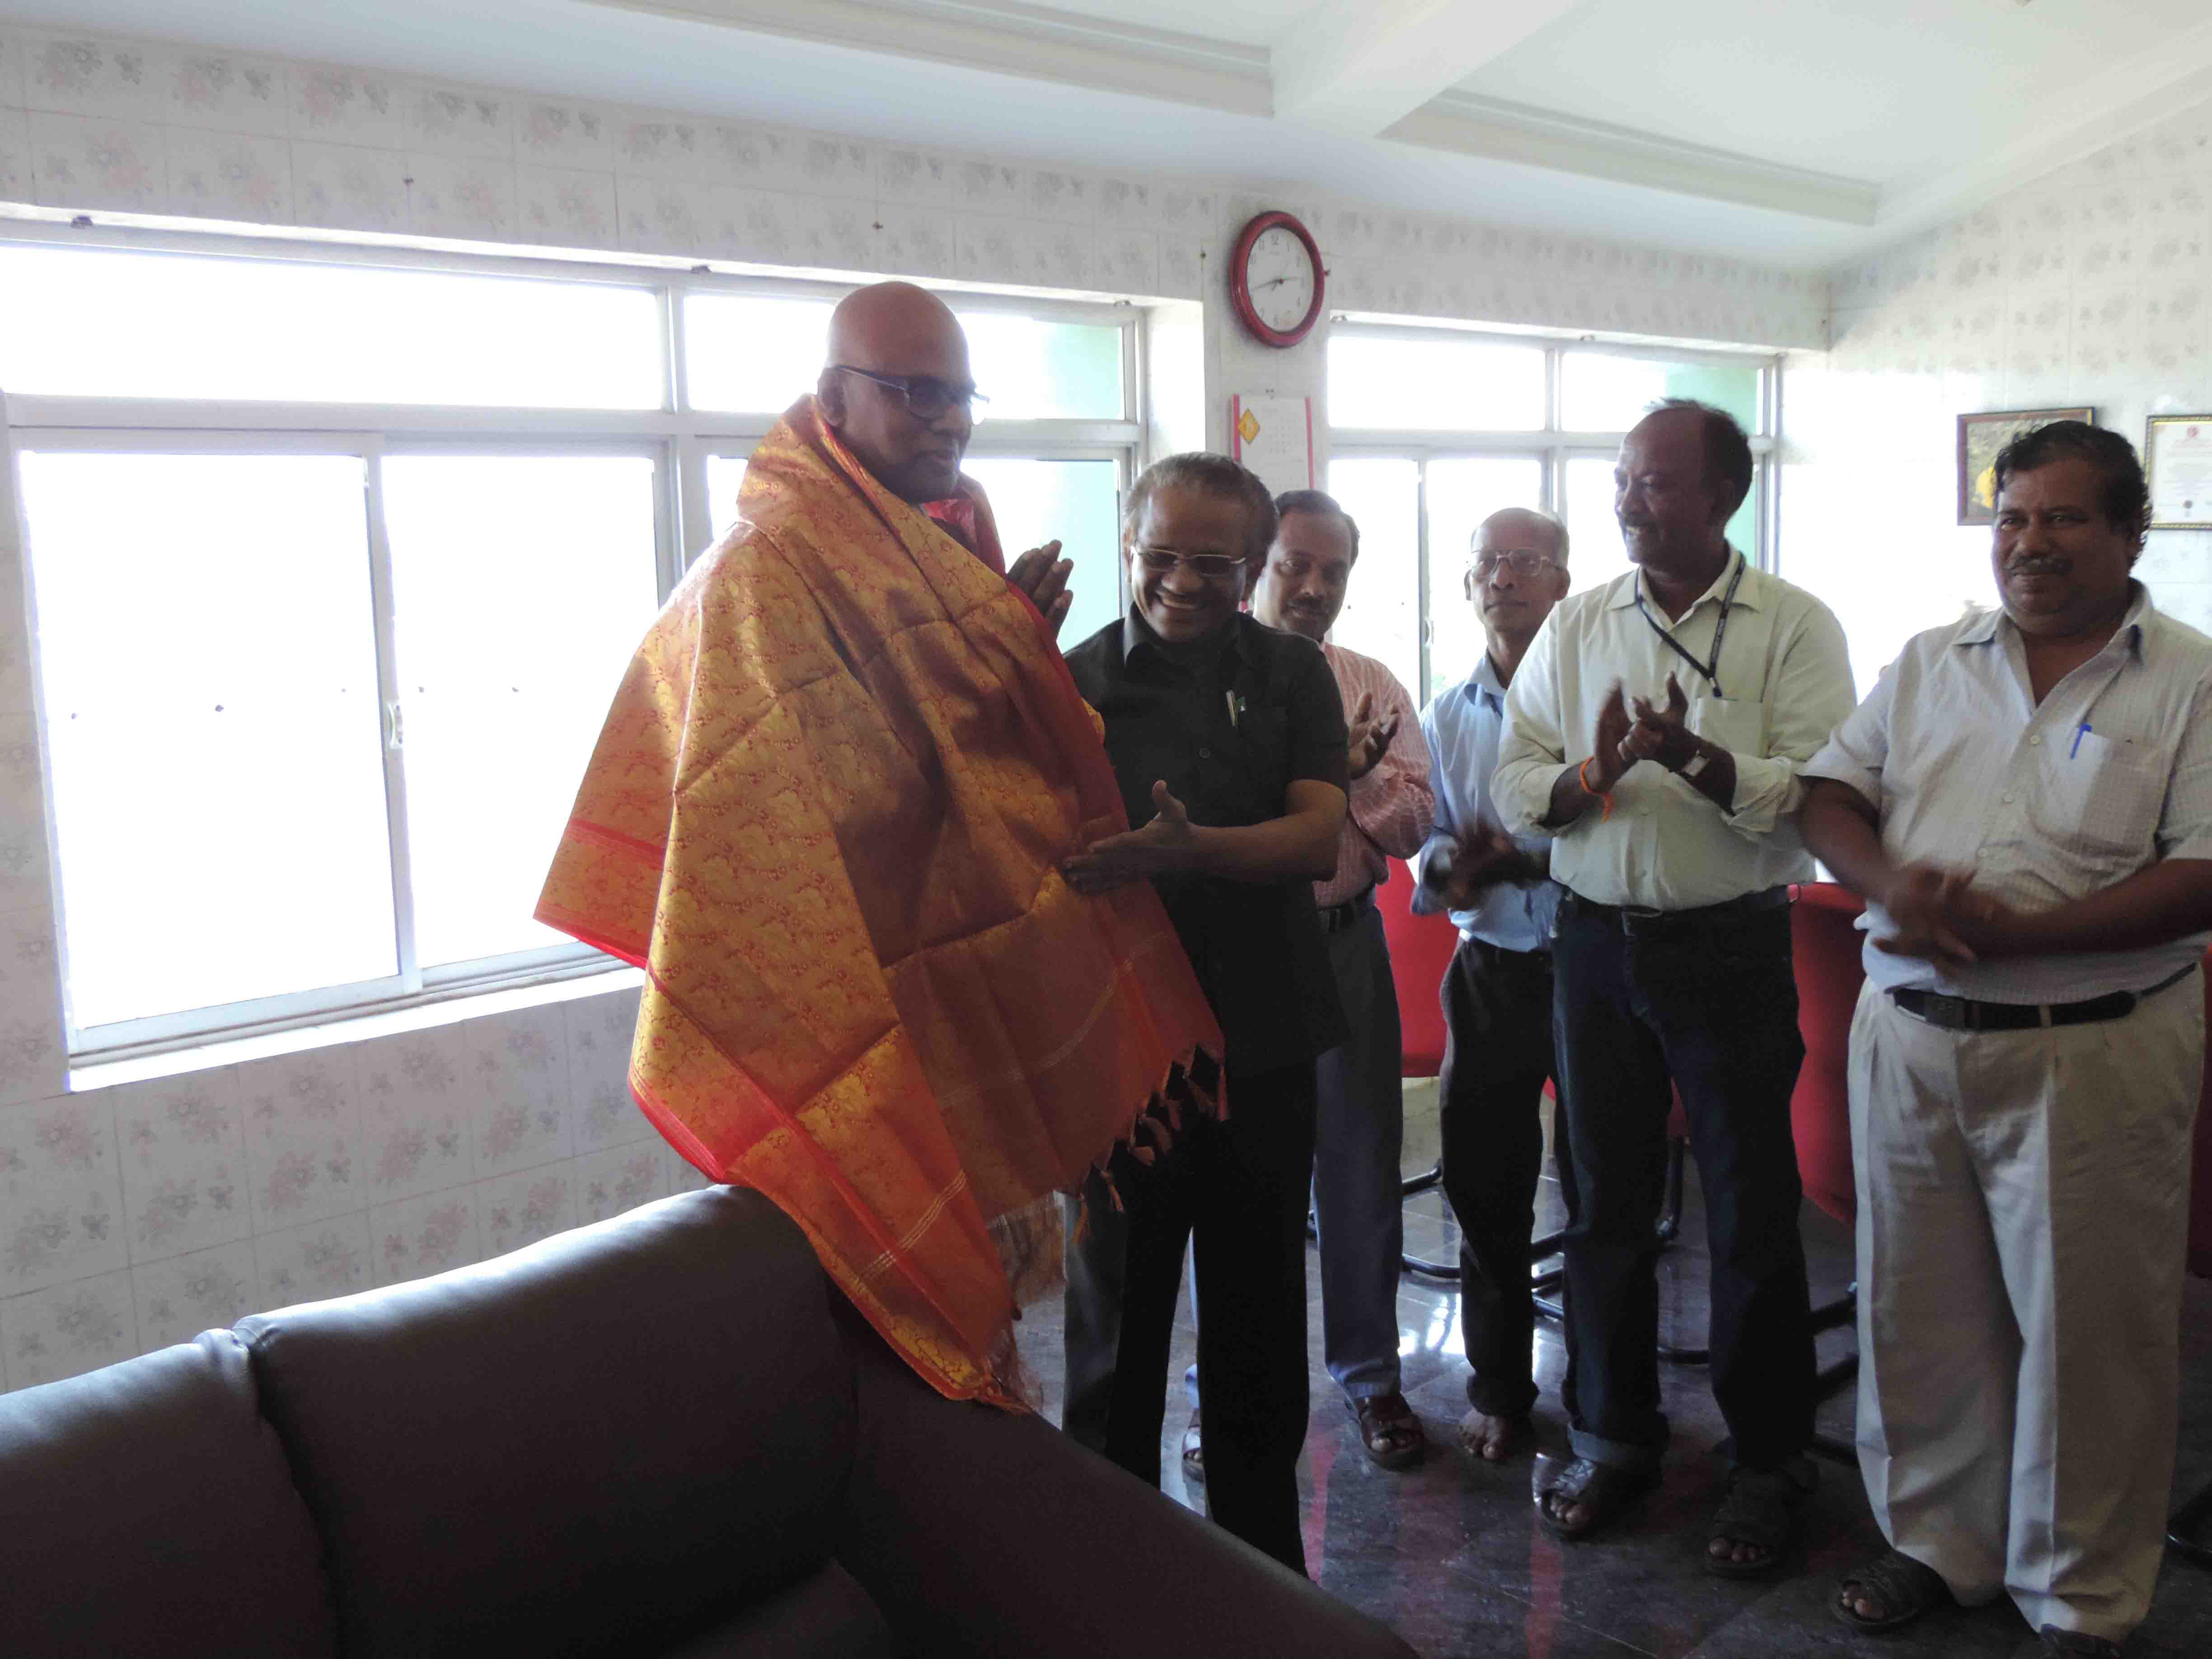 Shri. M. Kannan, Economic Advisor visit